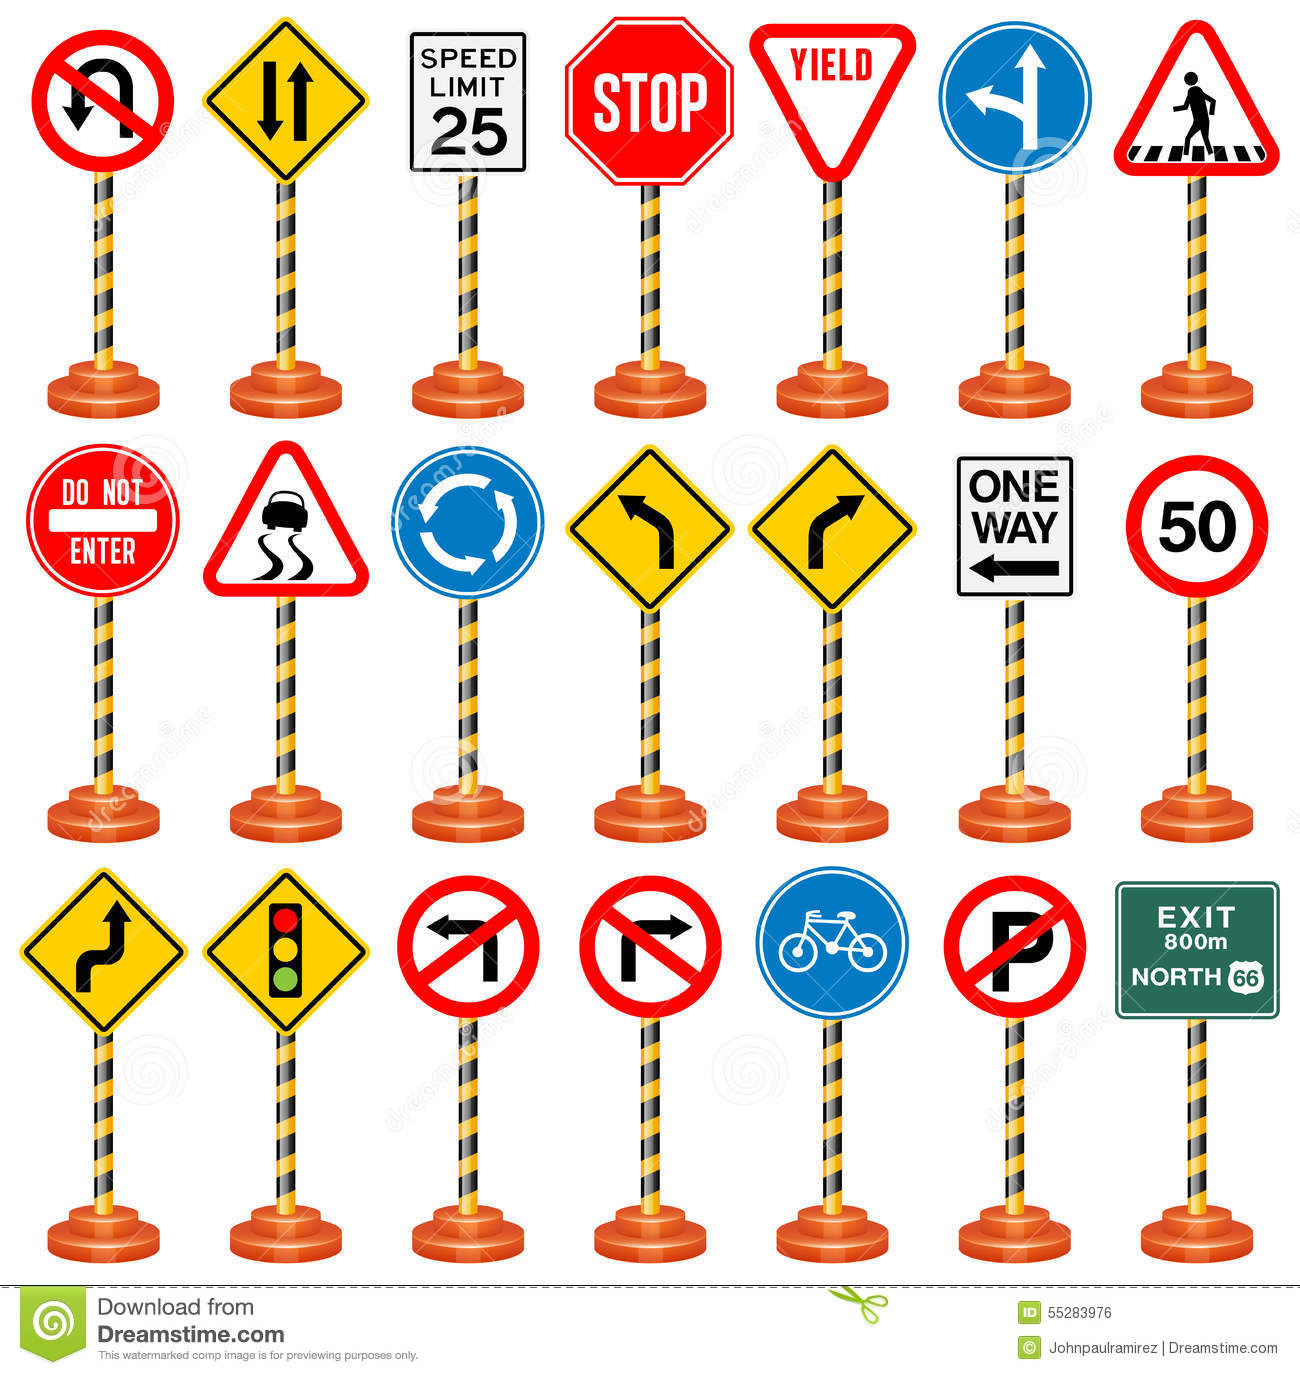 Road Signs Traffic Signs Transportation Safety Travel